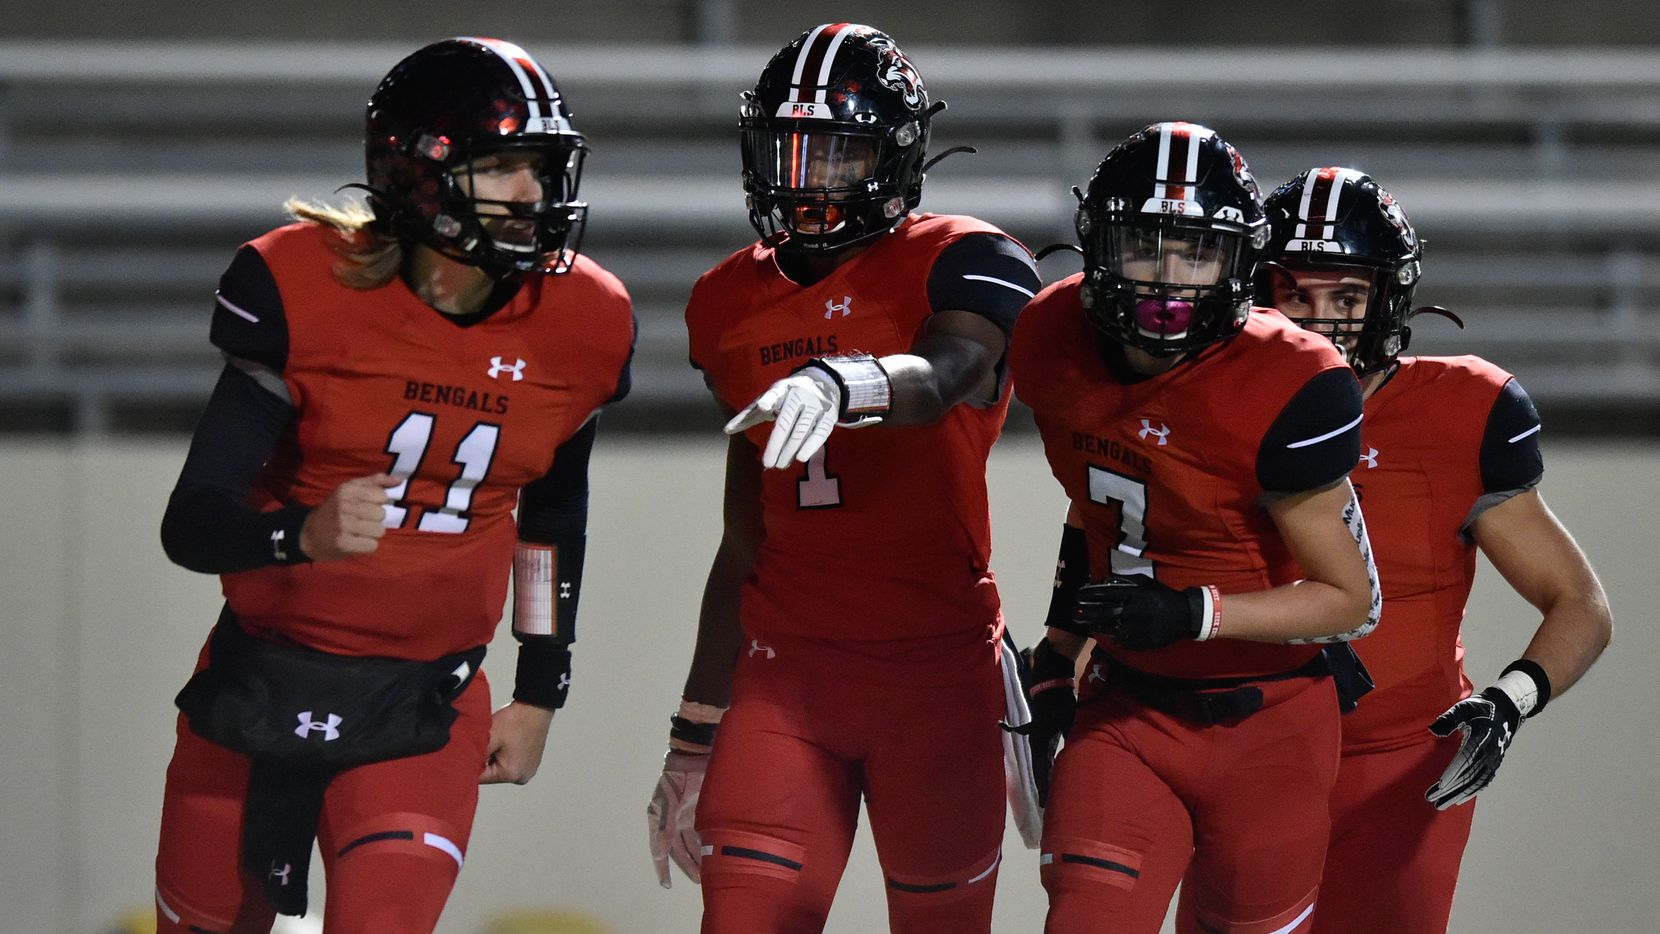 The Braswell football team celebrates after they score against the Corsicana defense at C.H. Collins Athletic Complex, Friday, November 15, 2019, in Denton, Texas.